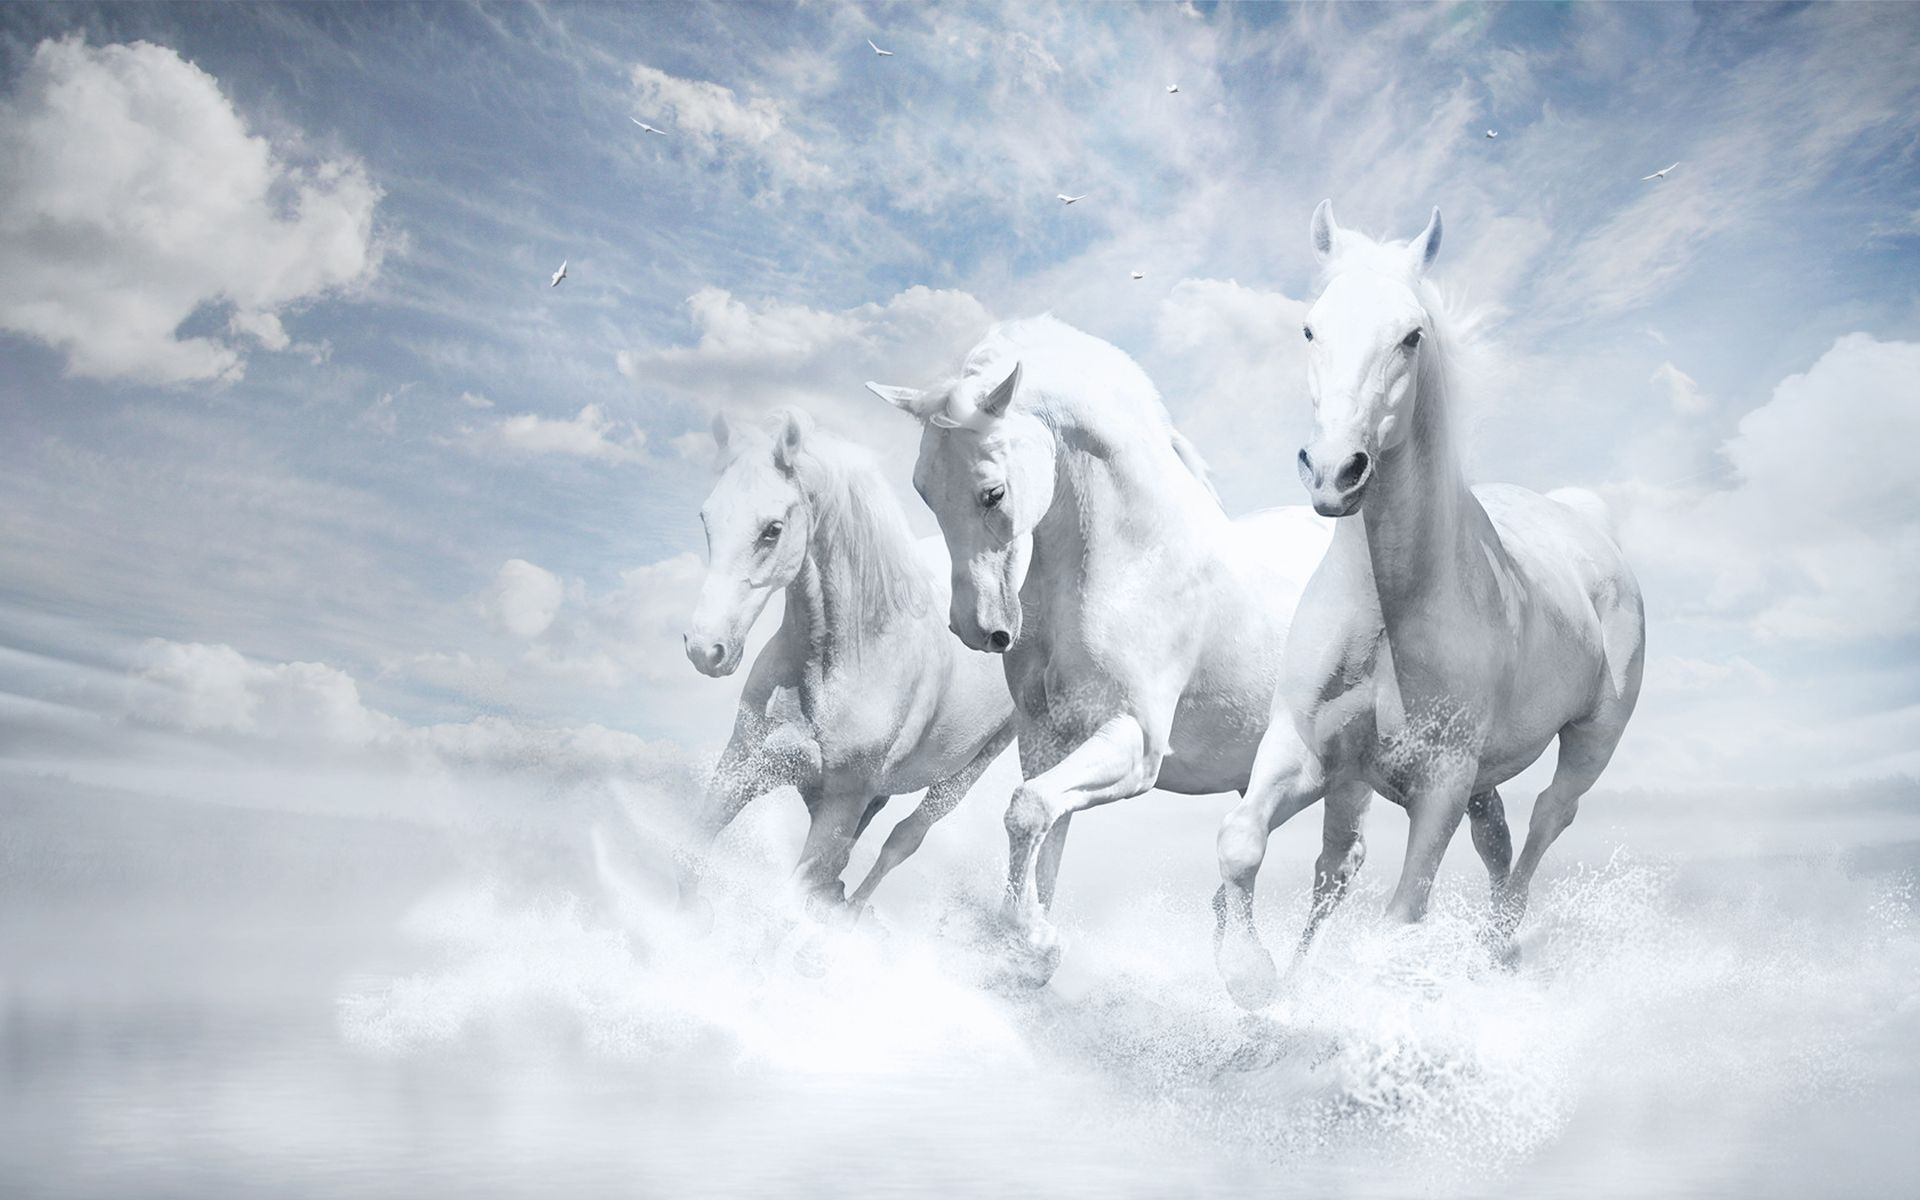 Pin By Wallpaperlive On White Horse Wallpaper Horses White Horses